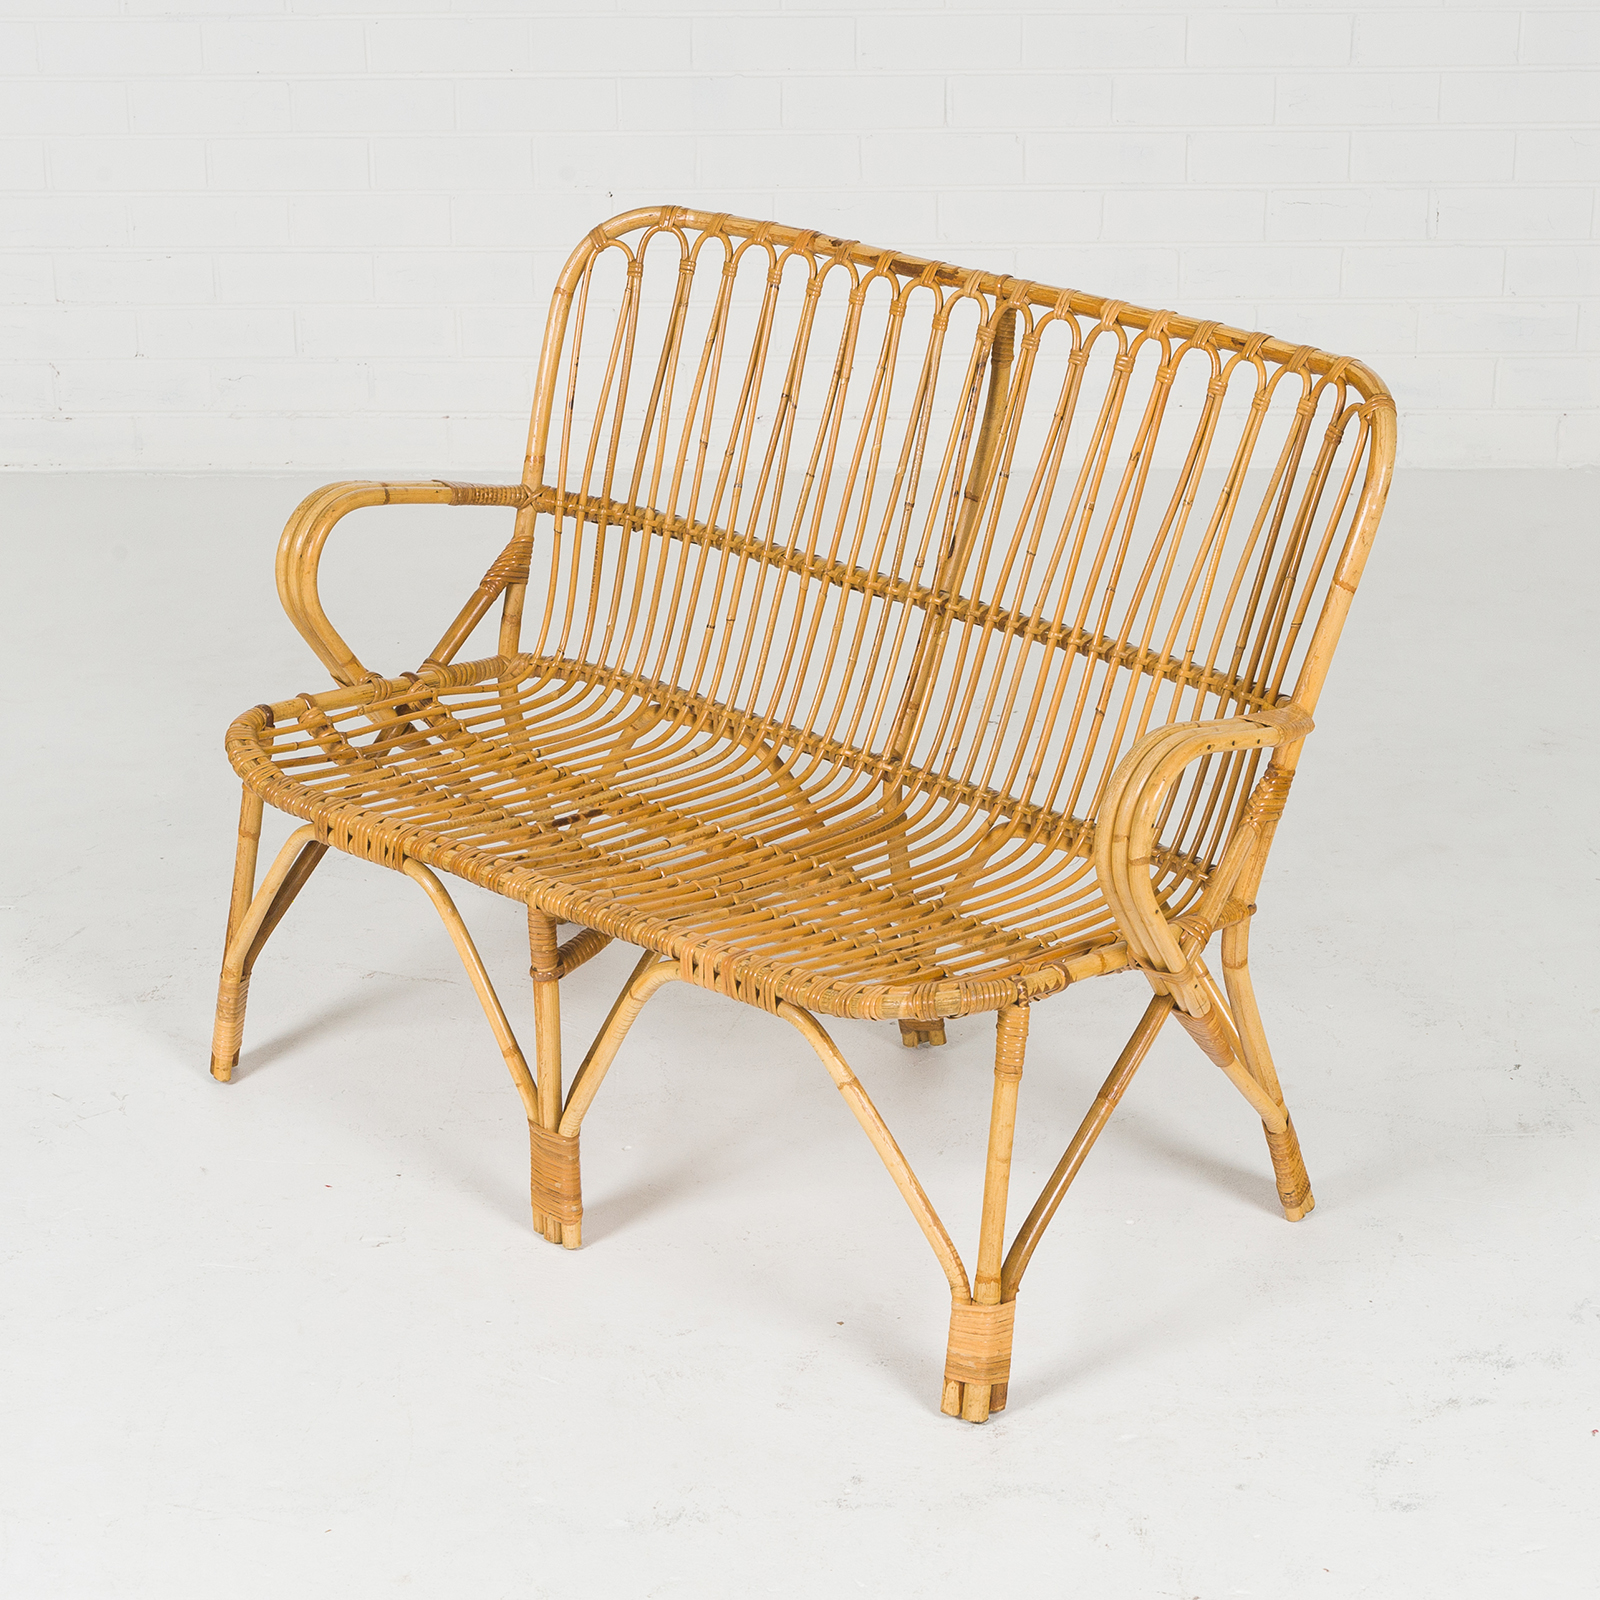 2 Seat Wicker Sofa In Bamboo With Coiled Socks 1960s Denmark 03